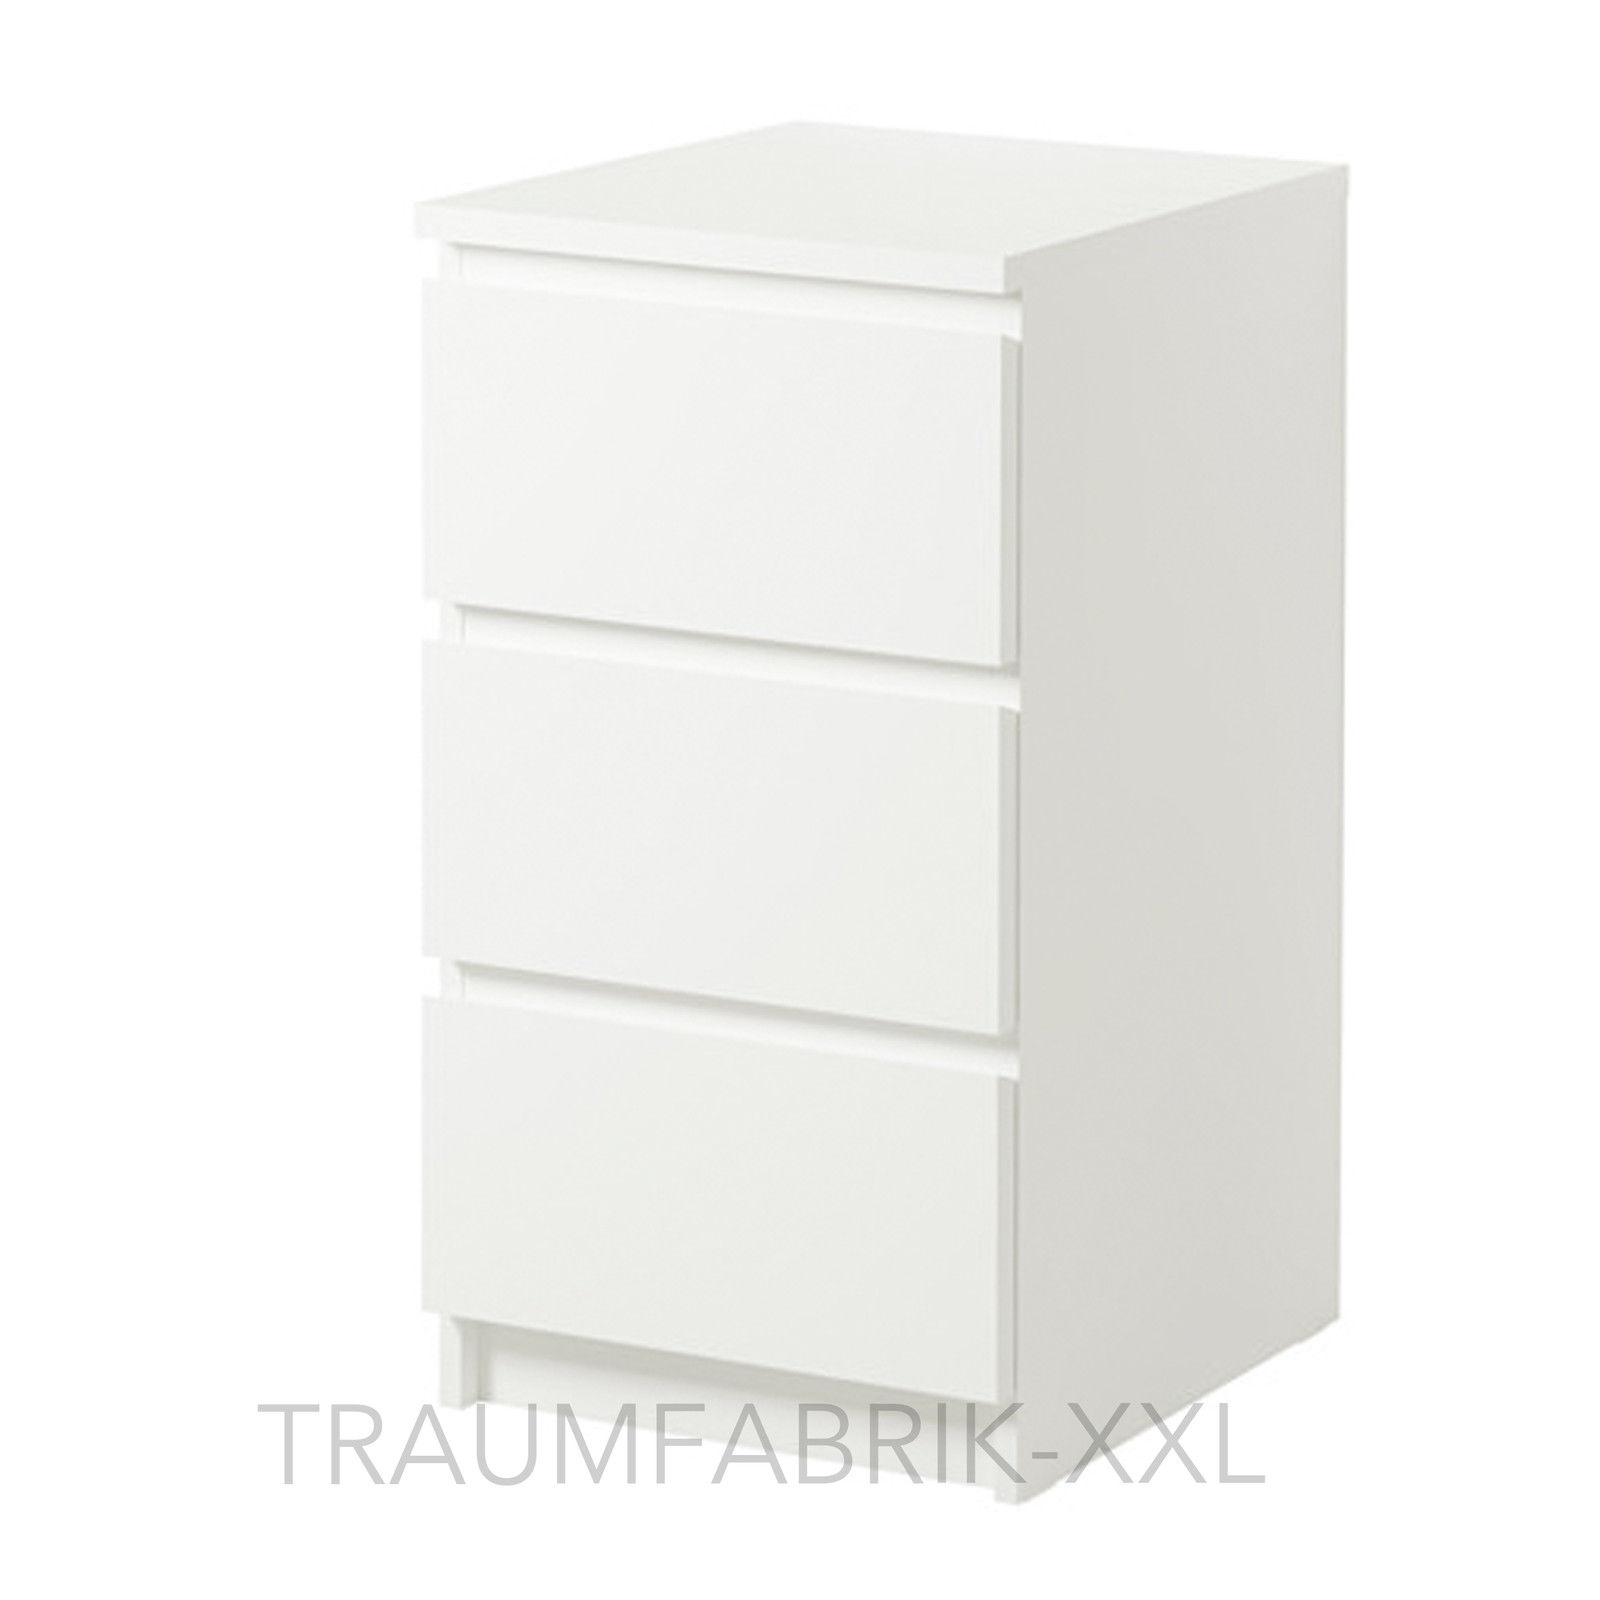 ikea malm kommode mit 3 schubladen wei nachtkonsole nachttisch schrank neu ovp traumfabrik xxl. Black Bedroom Furniture Sets. Home Design Ideas